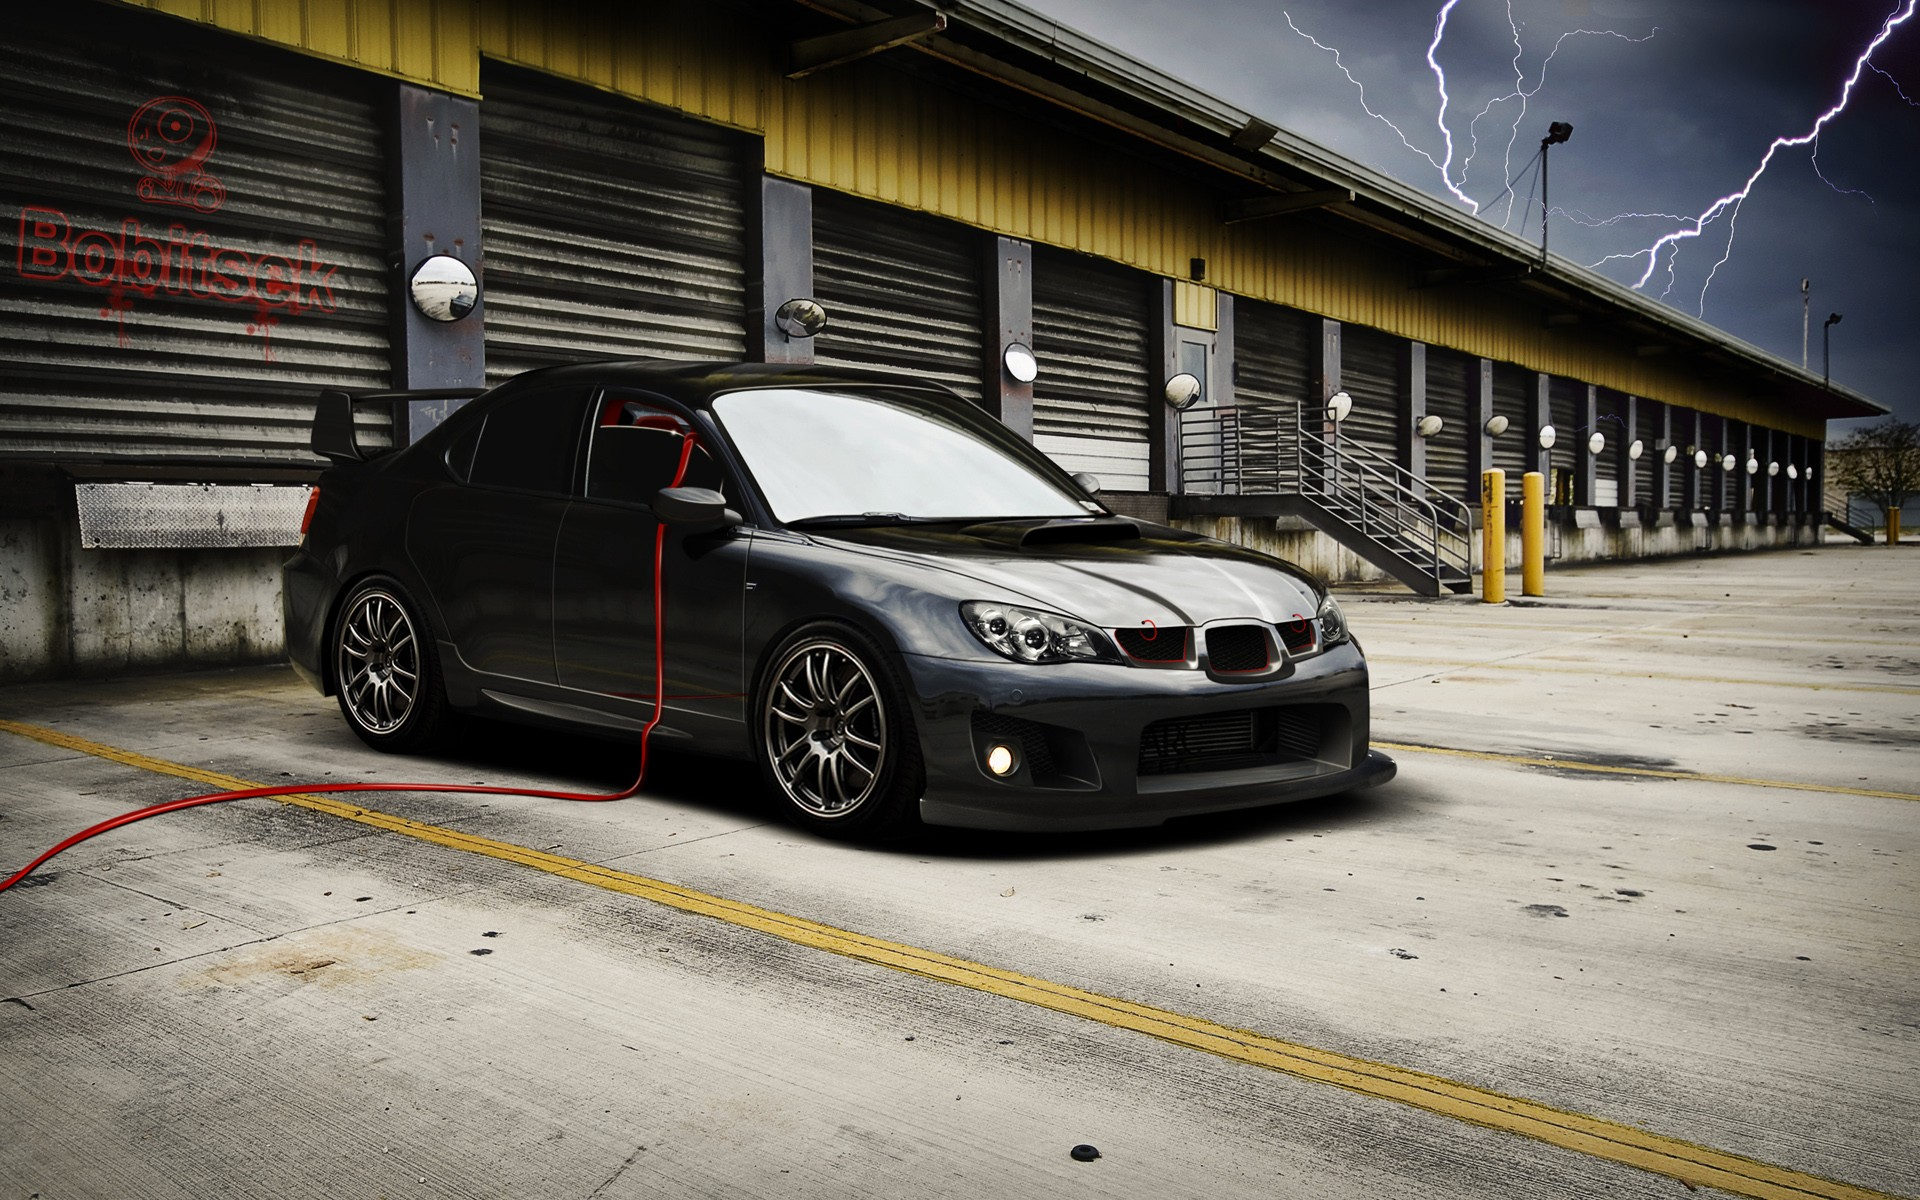 cars subaru tuning subaru impreza wrx jdm subaru impreza. Black Bedroom Furniture Sets. Home Design Ideas